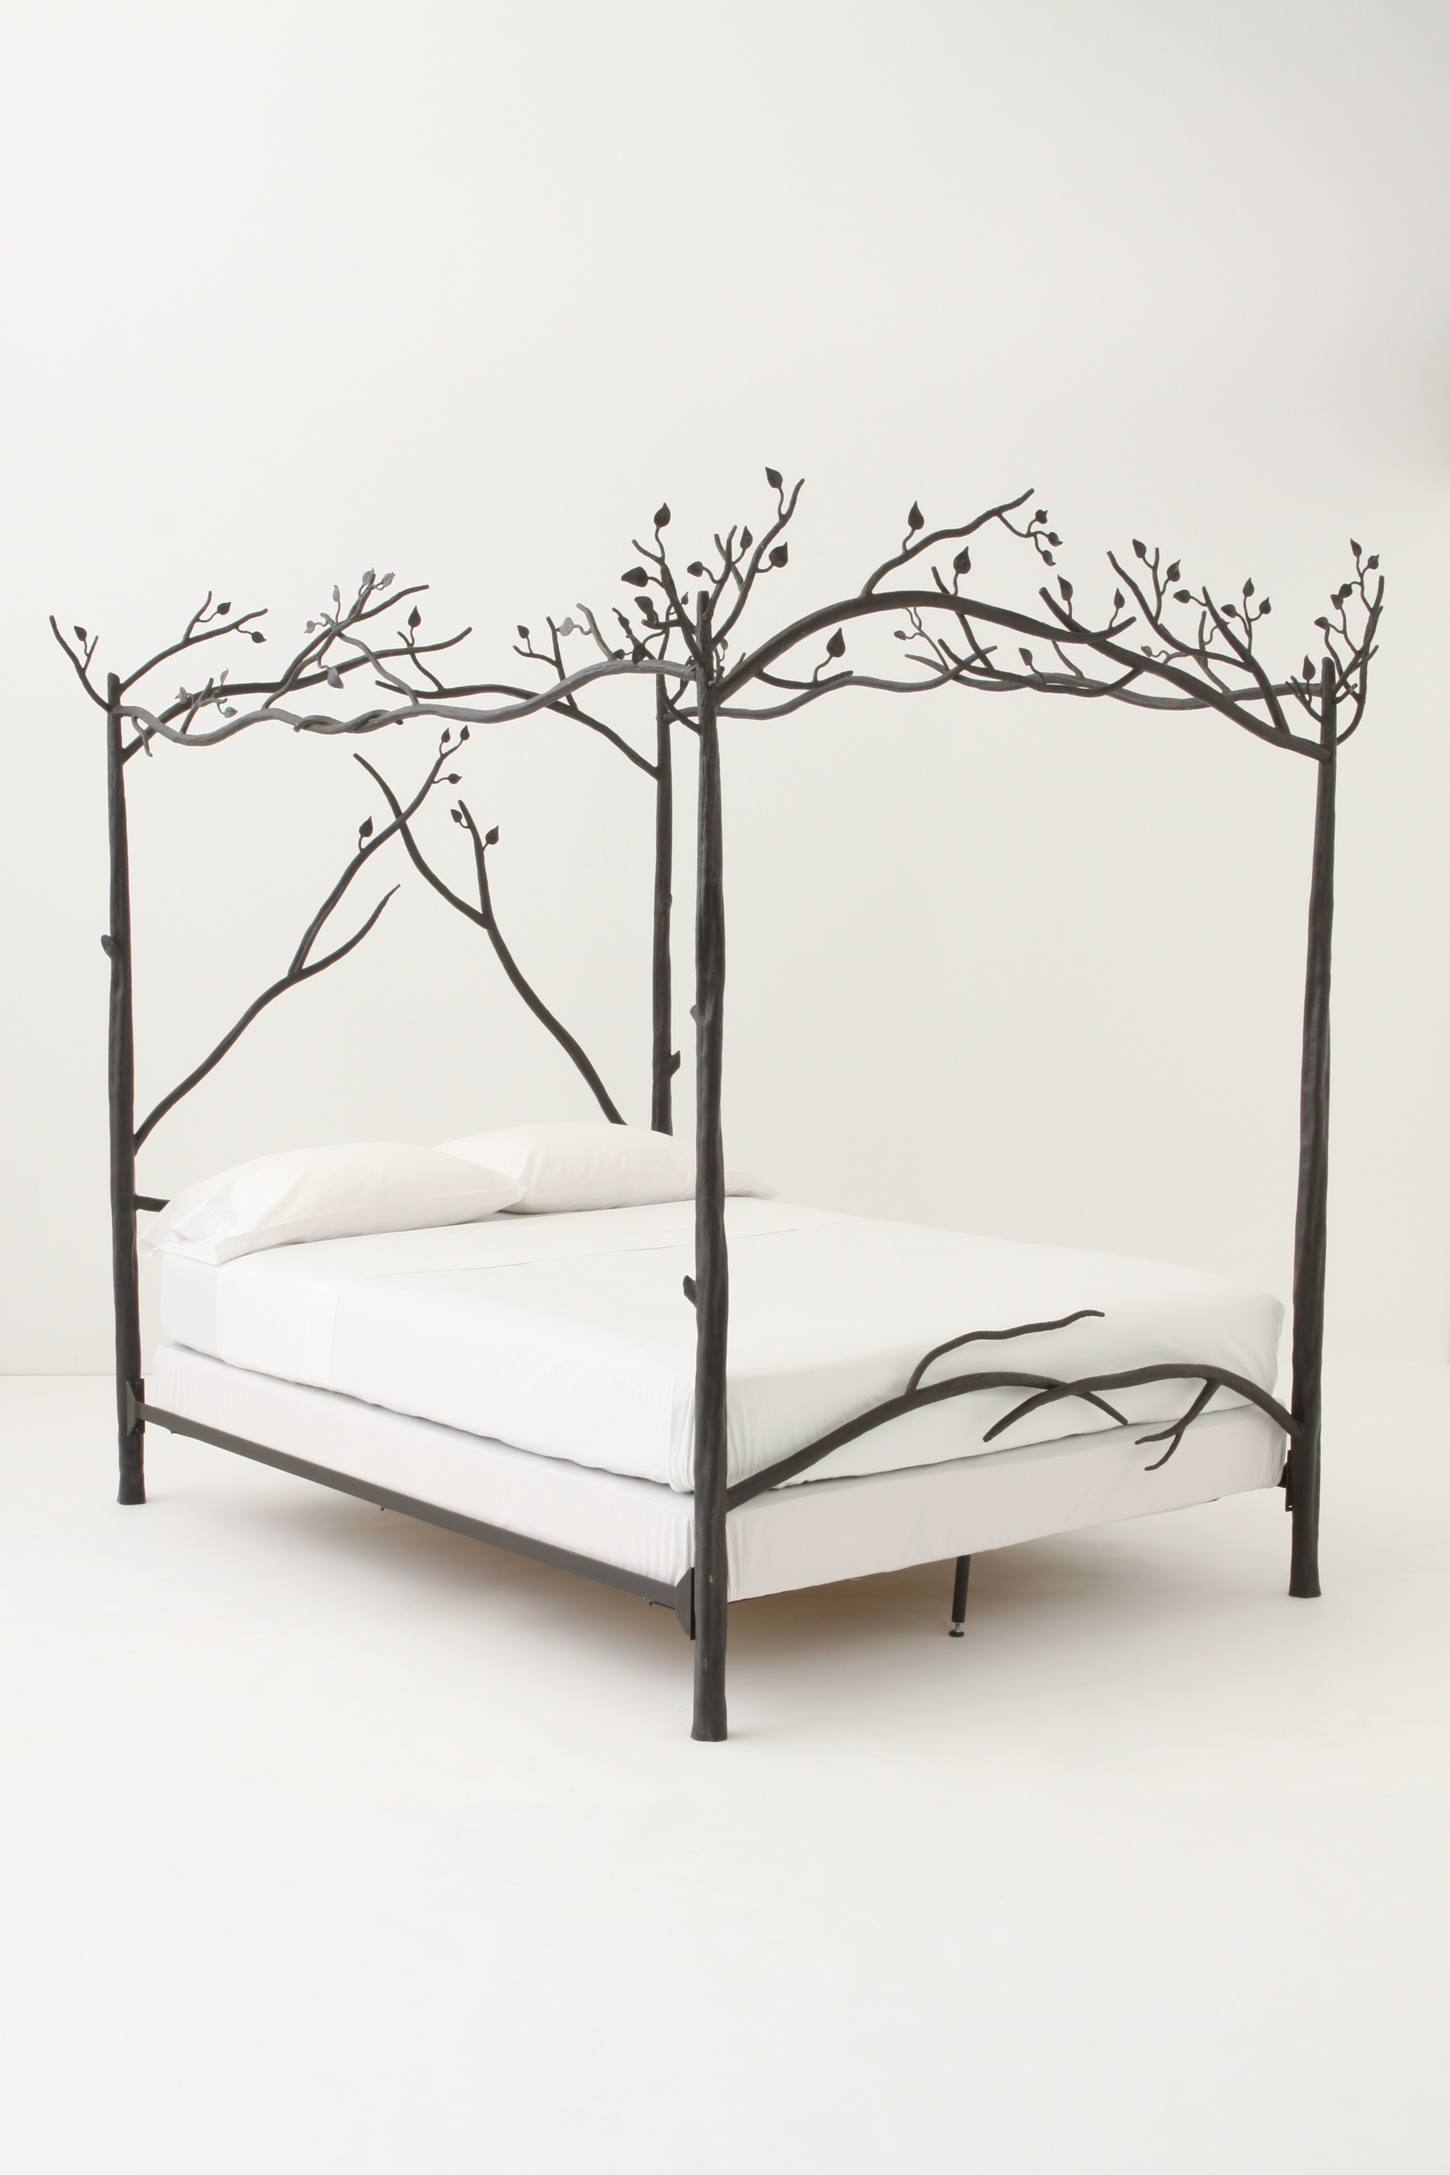 Slide View: 1: Forest Canopy Bed